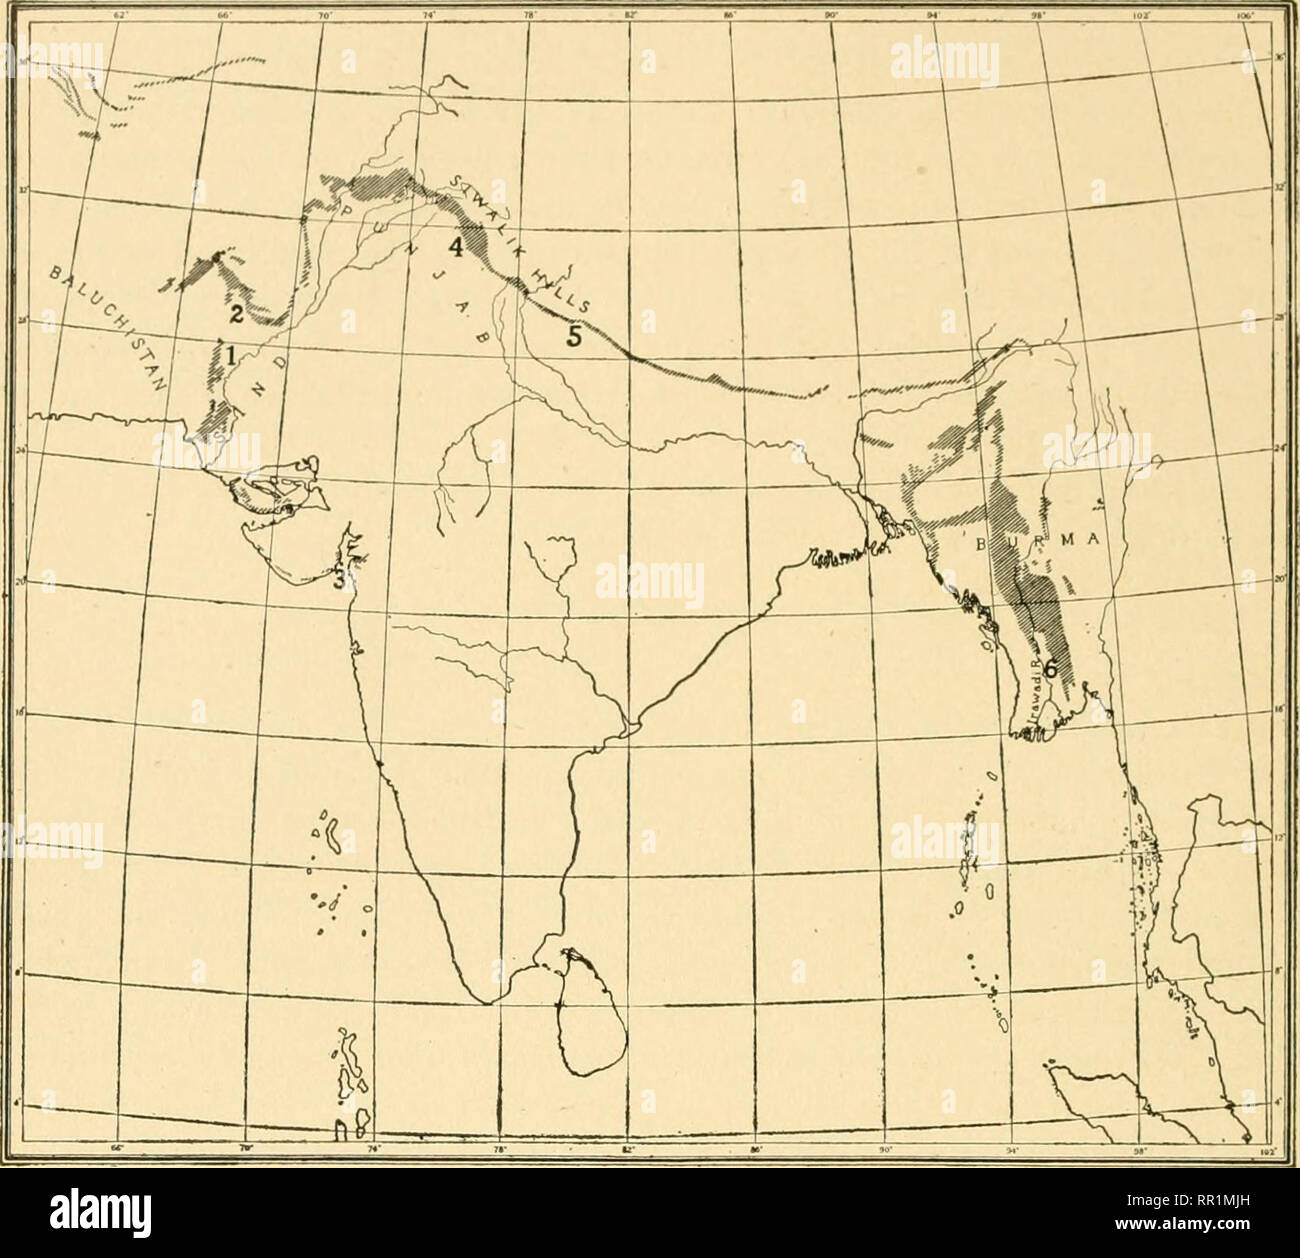 River Map India Stock Photos & River Map India Stock Images ...